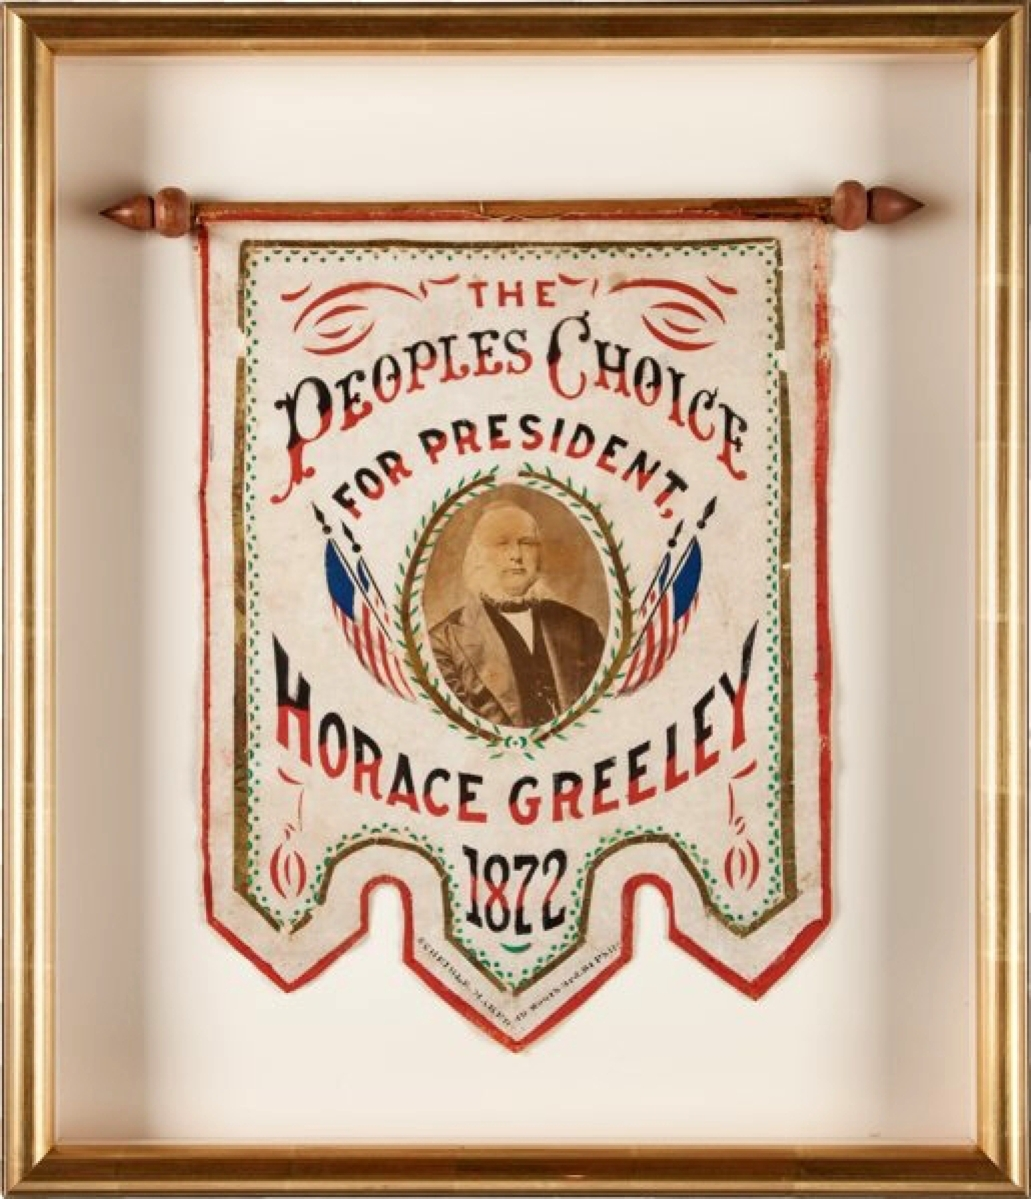 A red, white and blue Horace Greeley 1872 presidential campaign banner with albumen photo and gold-leaf trim in a shadow box brought $40,000.